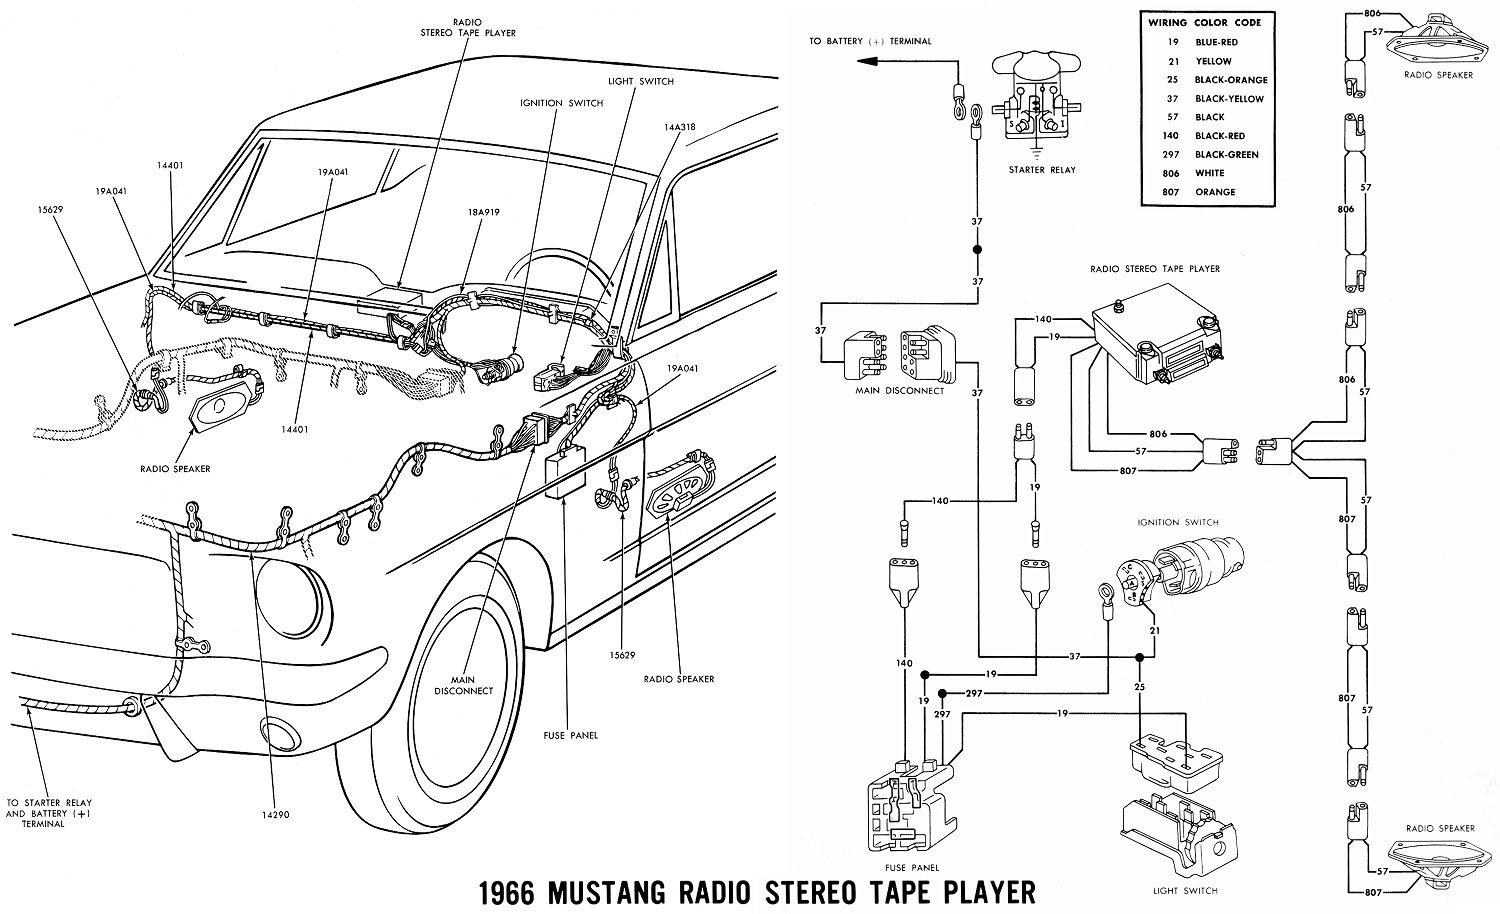 1963 Ford Wiring Diagram Schematics Diagrams Falcon Dolgular moreover 1964 Ford Fairlane Wiring Diagram together with New Wiring Harness 1966 Ford Galaxie also Parking Brake Diagram D23 likewise 1963 Galaxie Wiring Diagram. on 1964 ford galaxie 500 xl